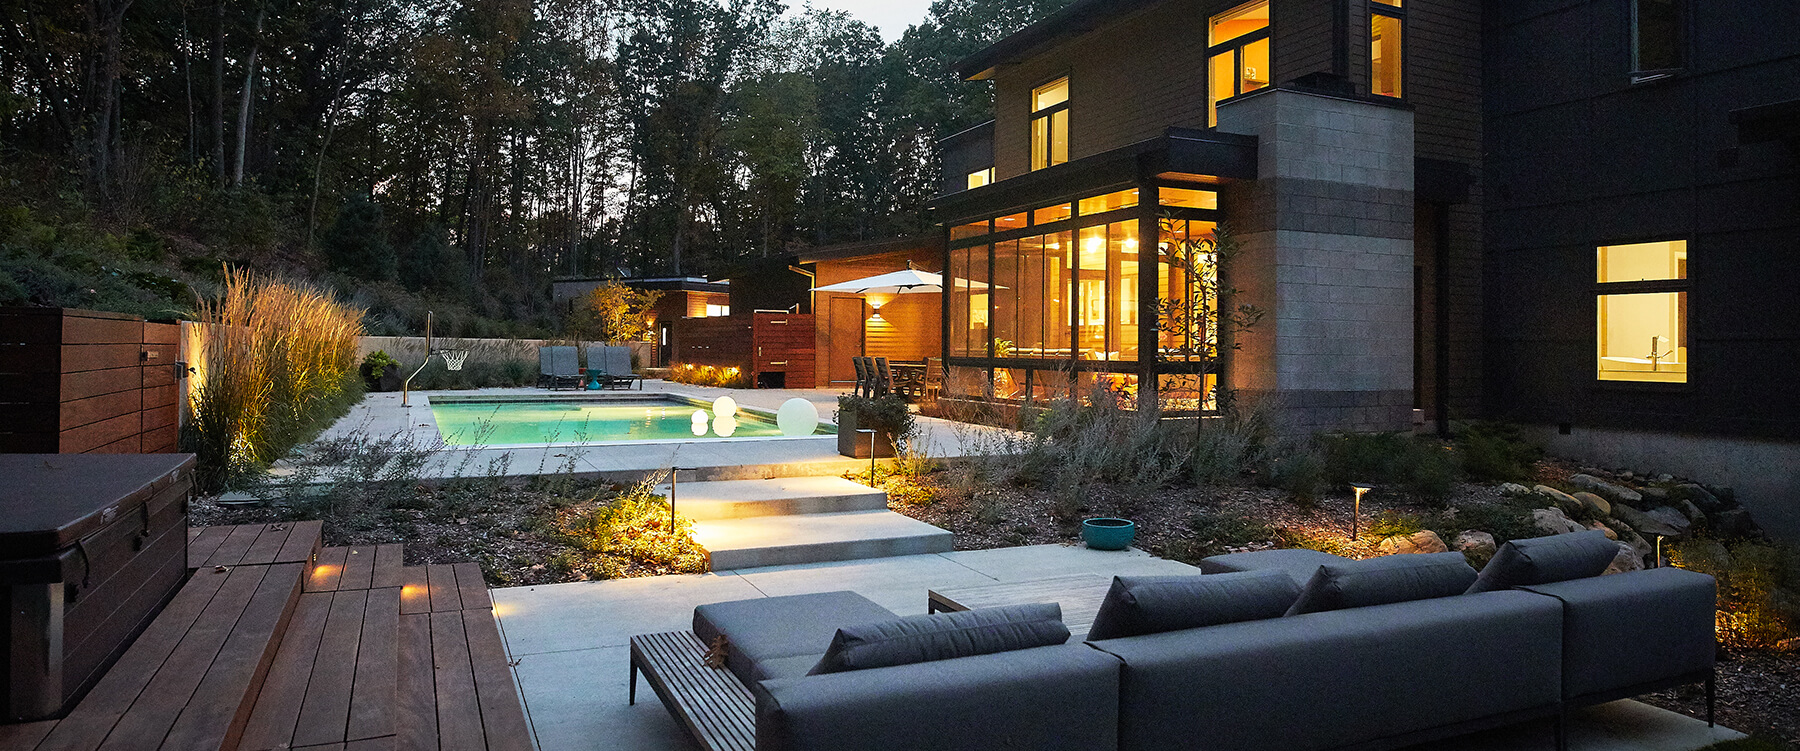 Back exterior with pool